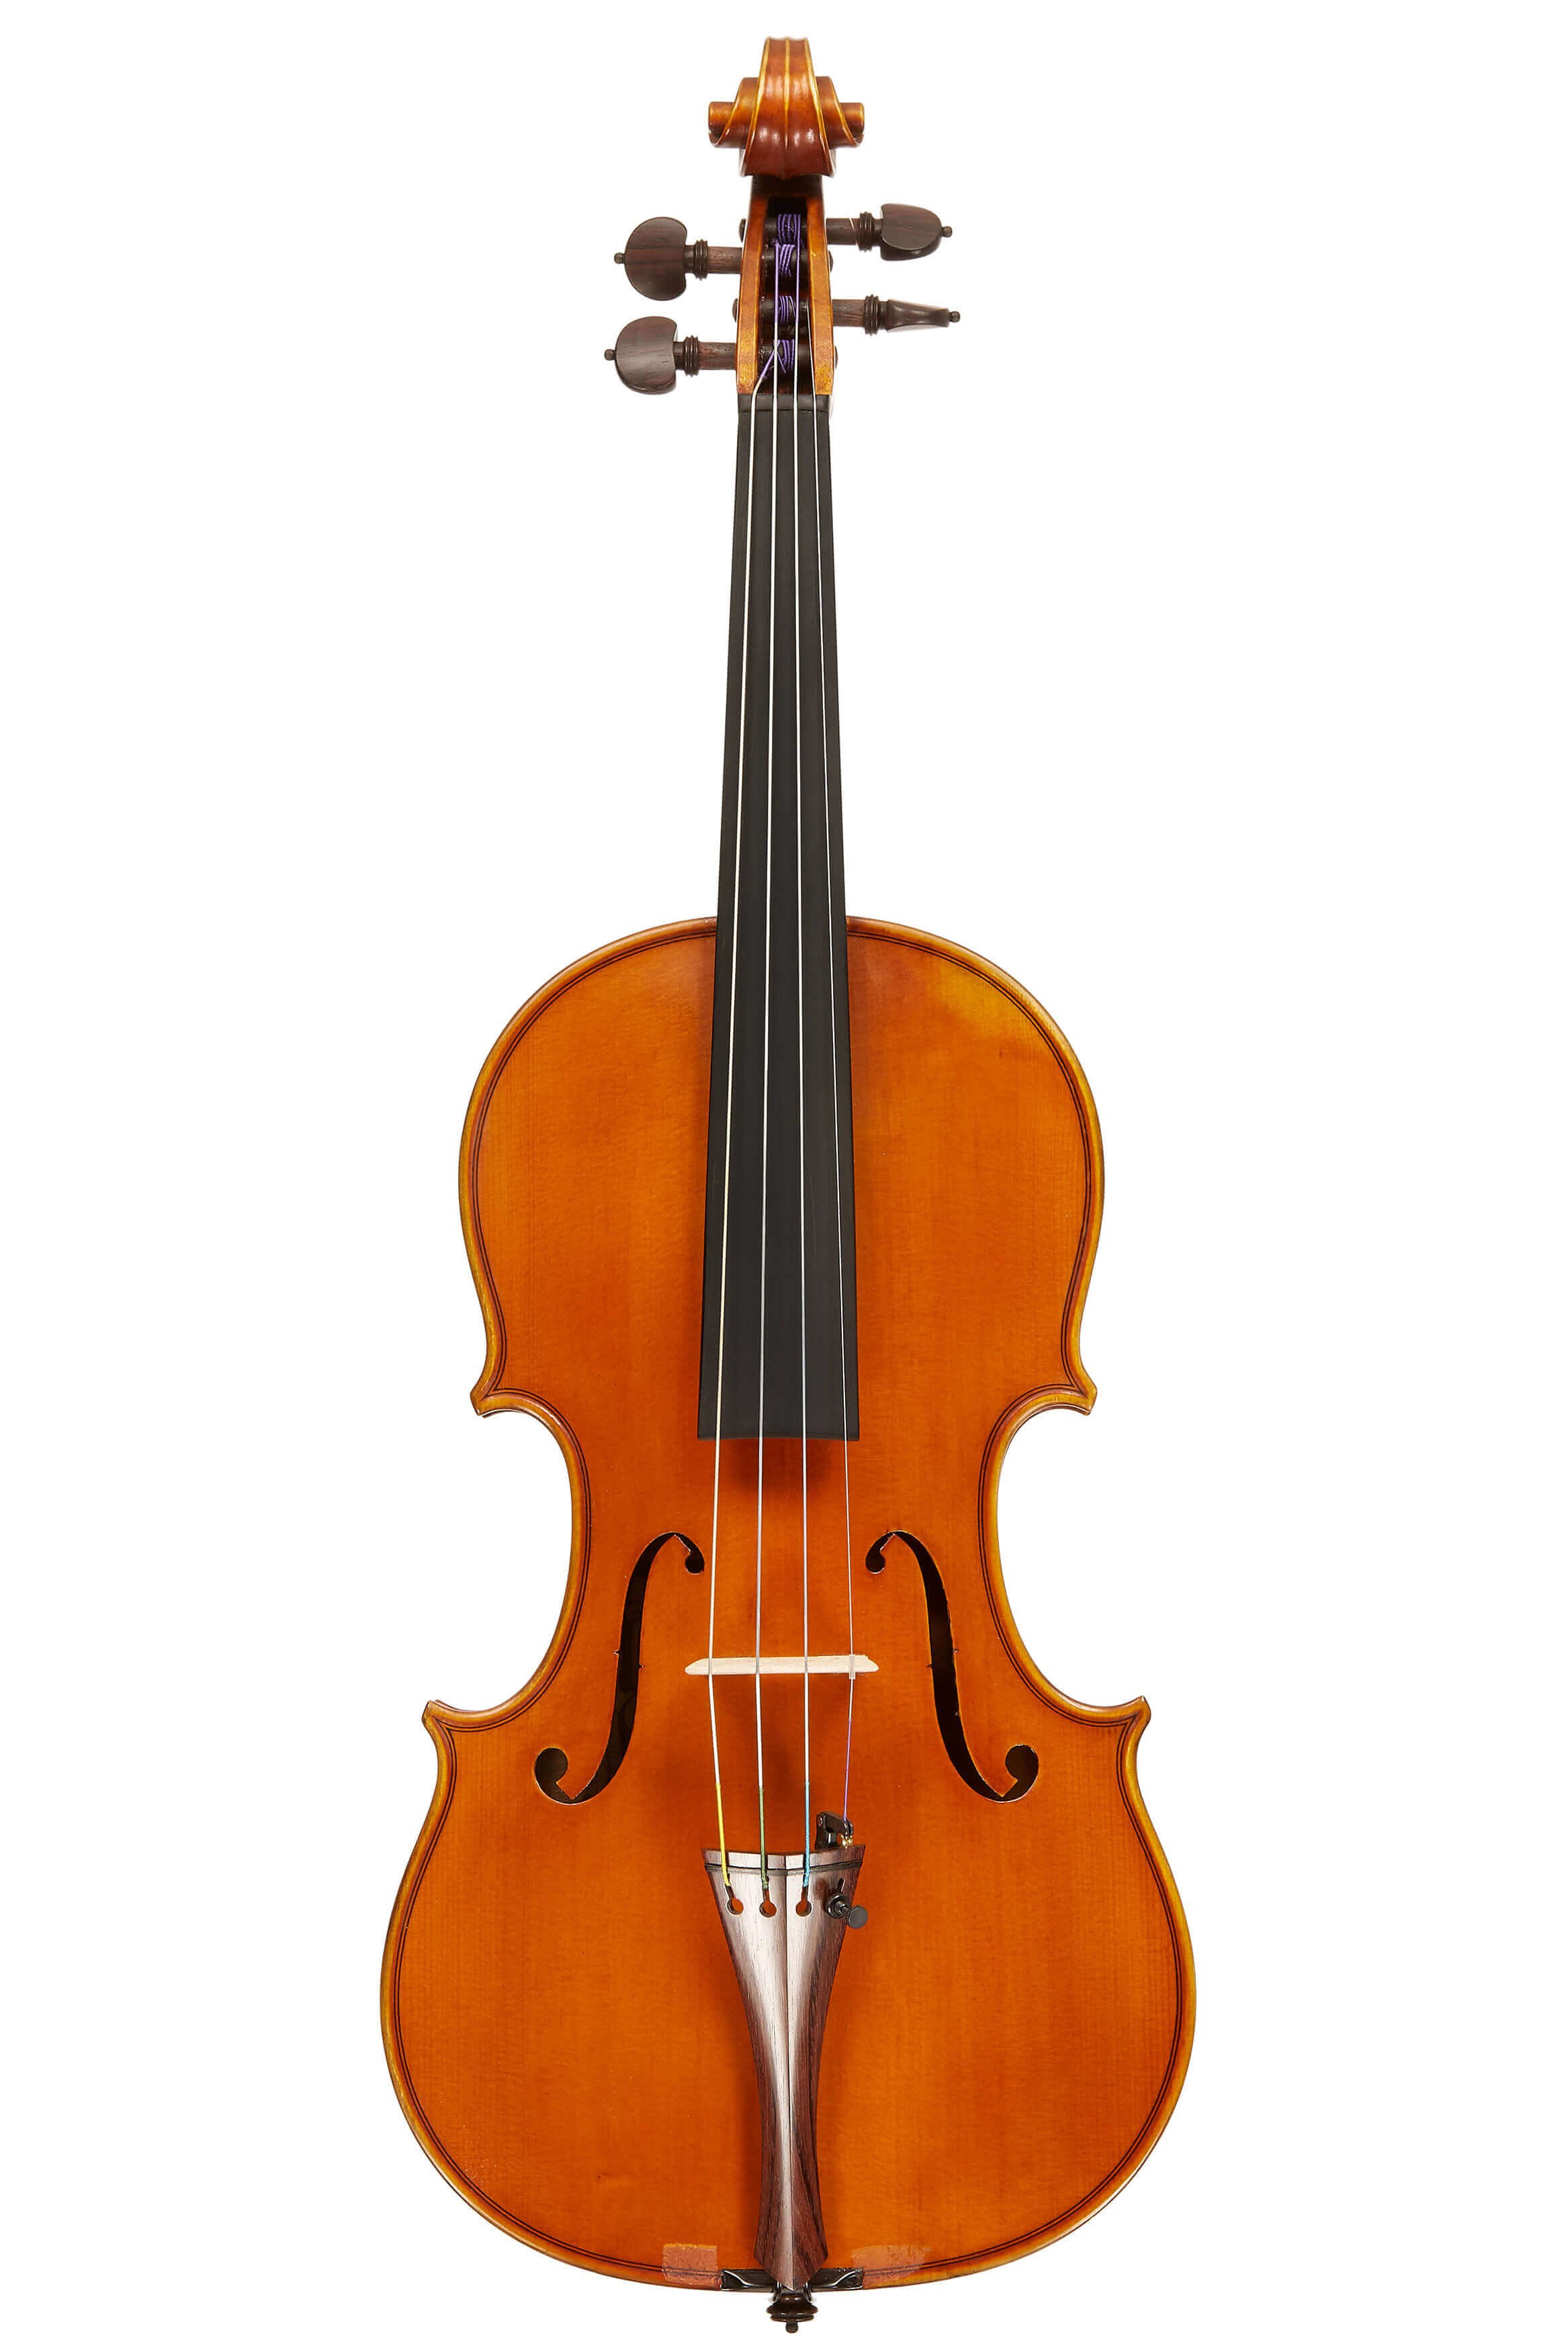 Violin by Mario Gadda, Mantua, 1984